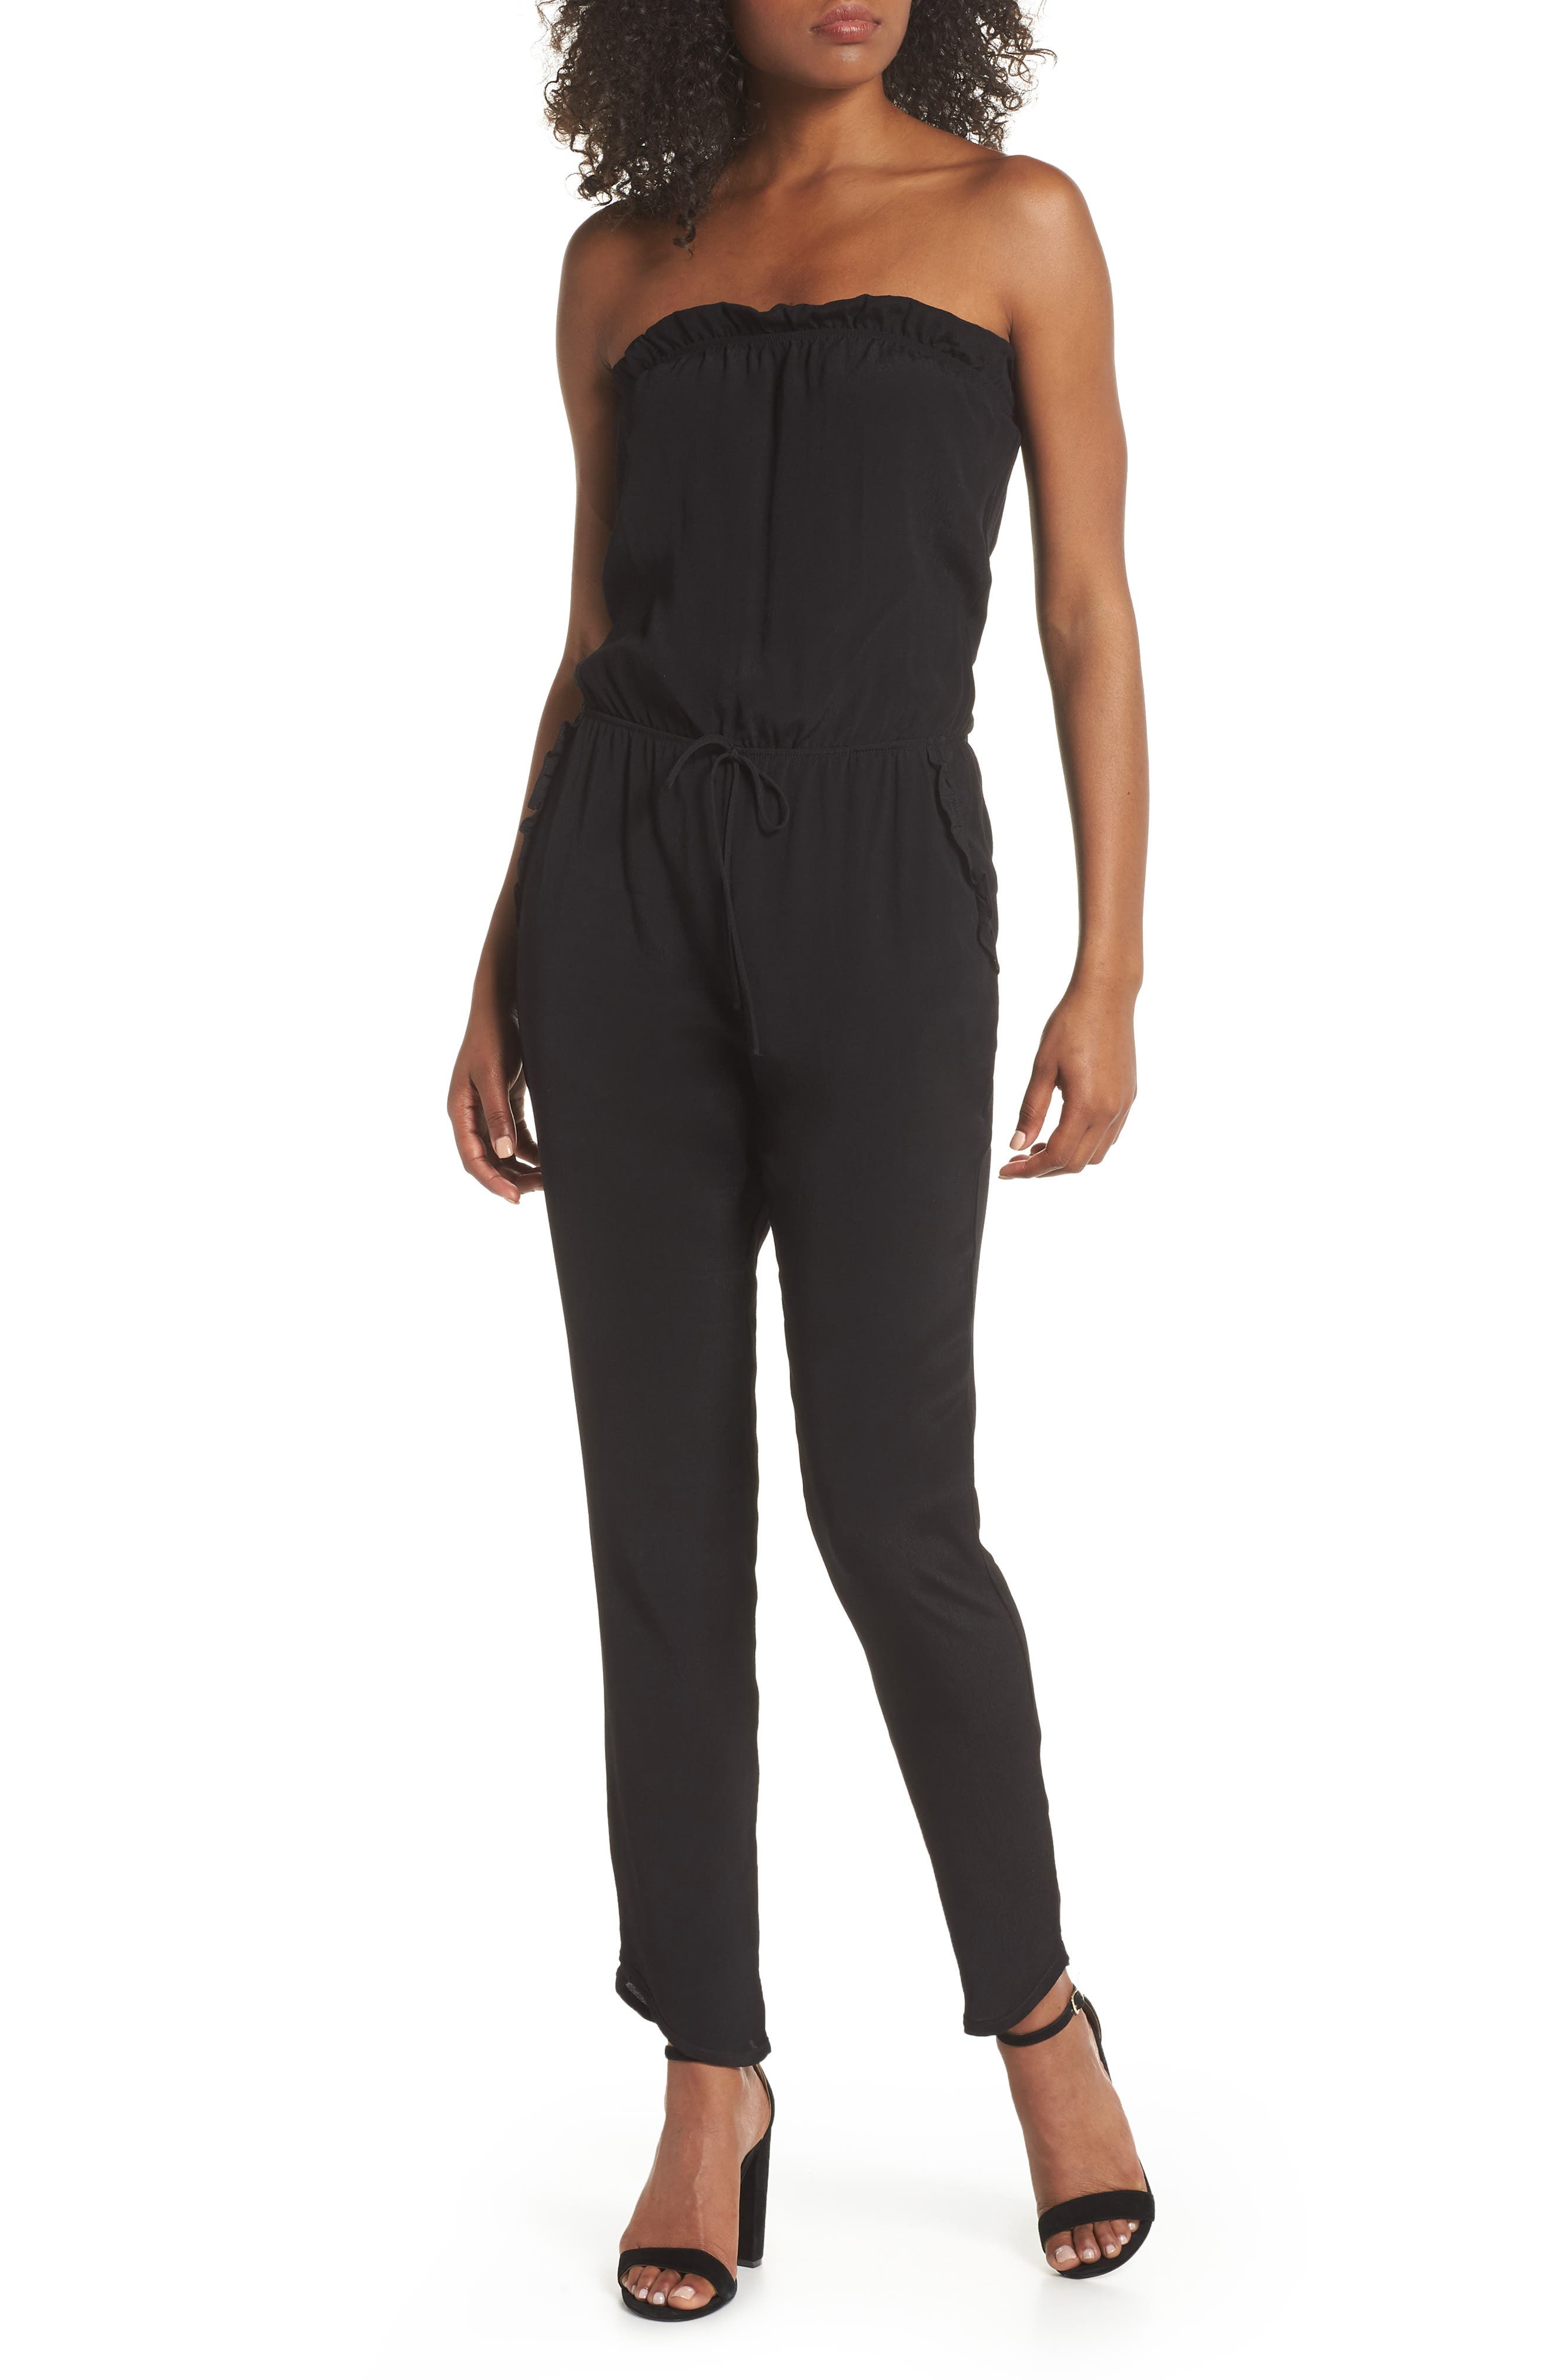 c81c8314dc31 Women s Rompers   Jumpsuits Sale